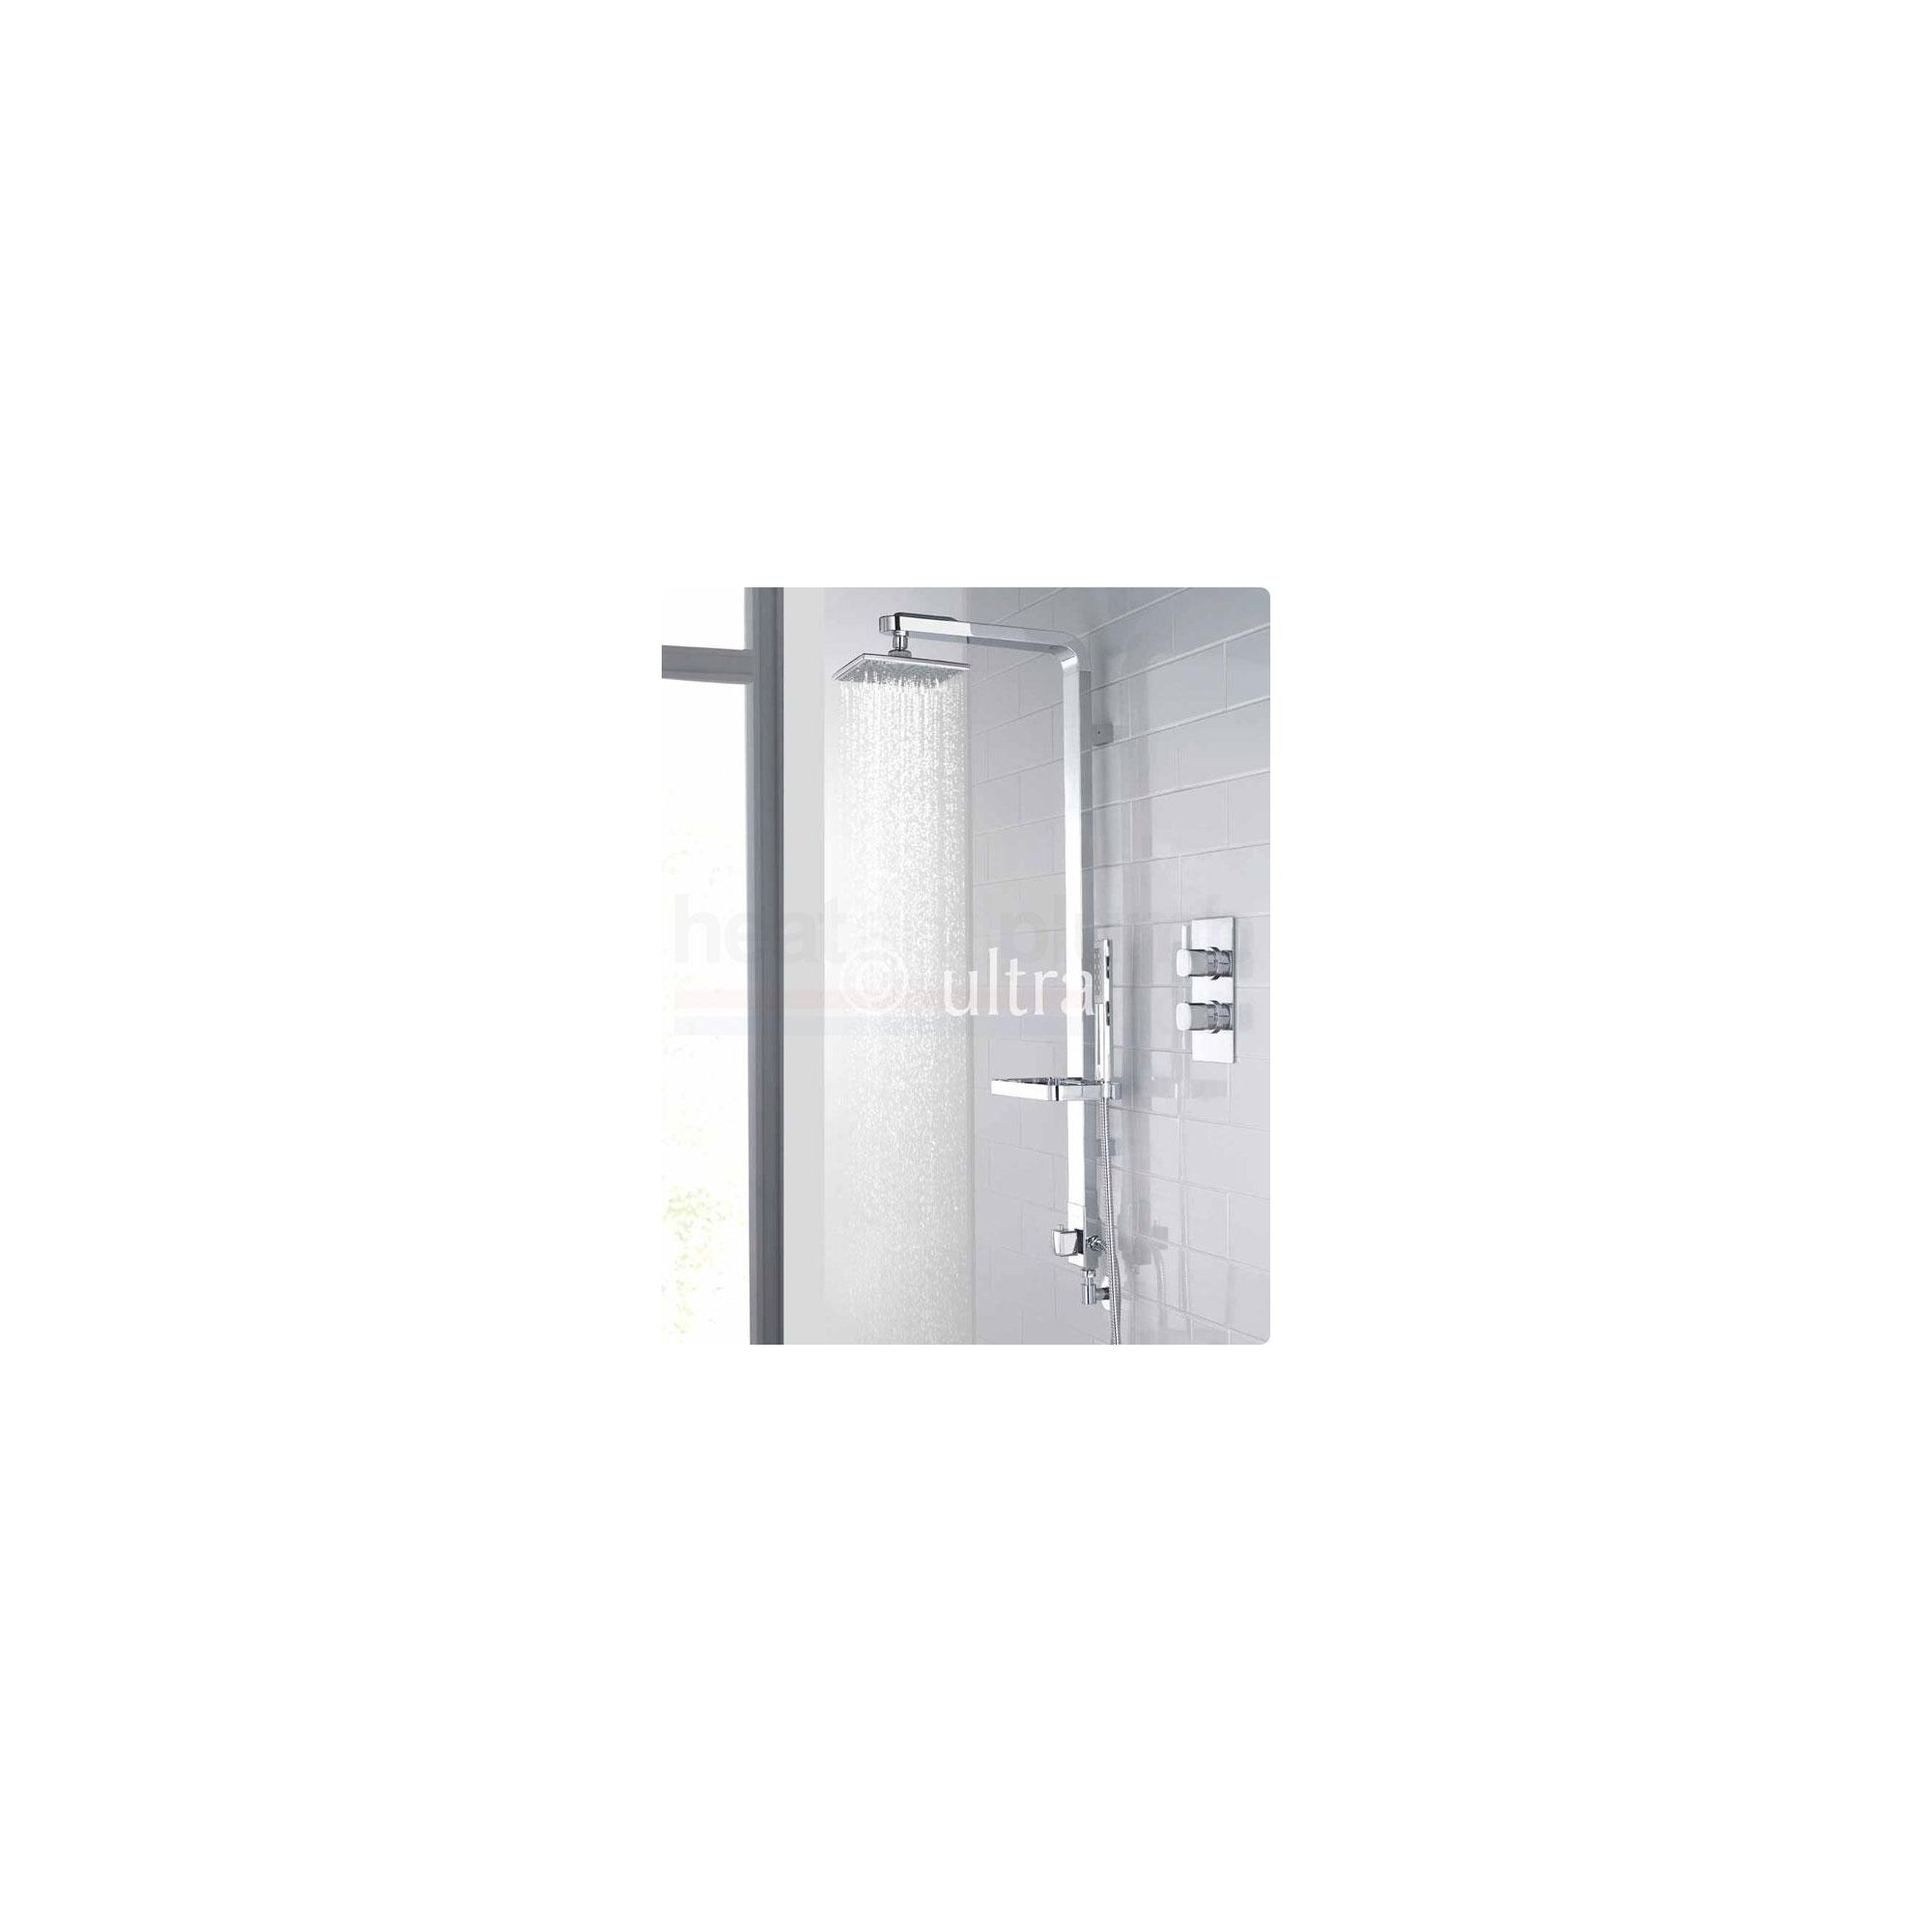 Ultra Muse Twin Valve Complete Thermostatic Mixer Shower at Tesco Direct